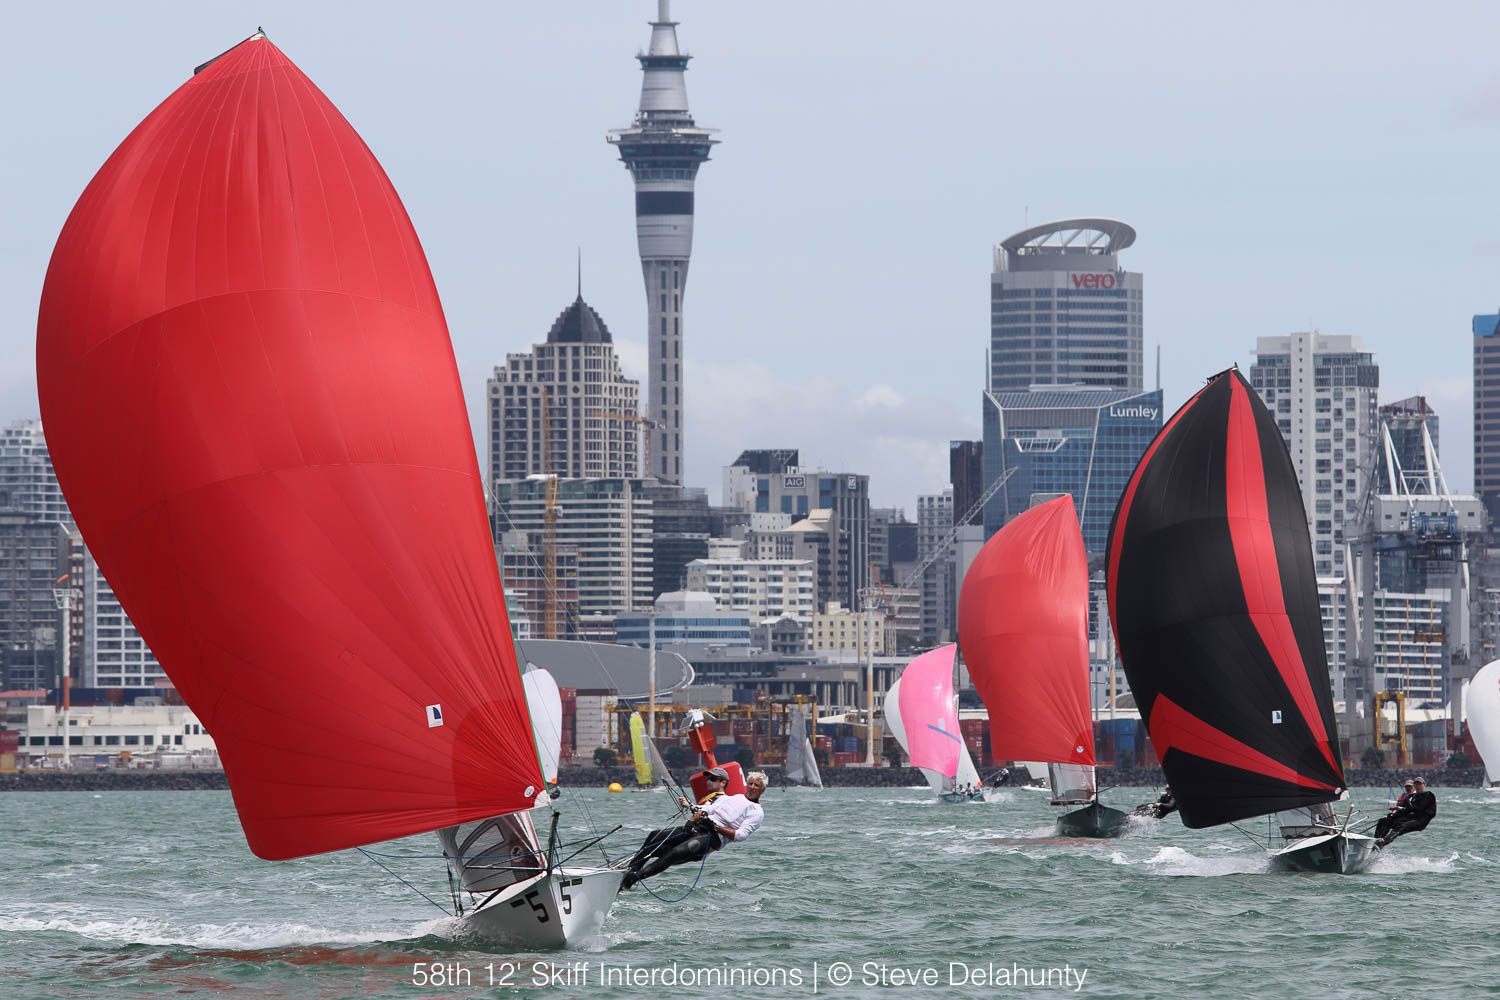 58th 12′ Skiff Interdominions: LIVESTREAM Replay Races 5, 6, 7 & 8